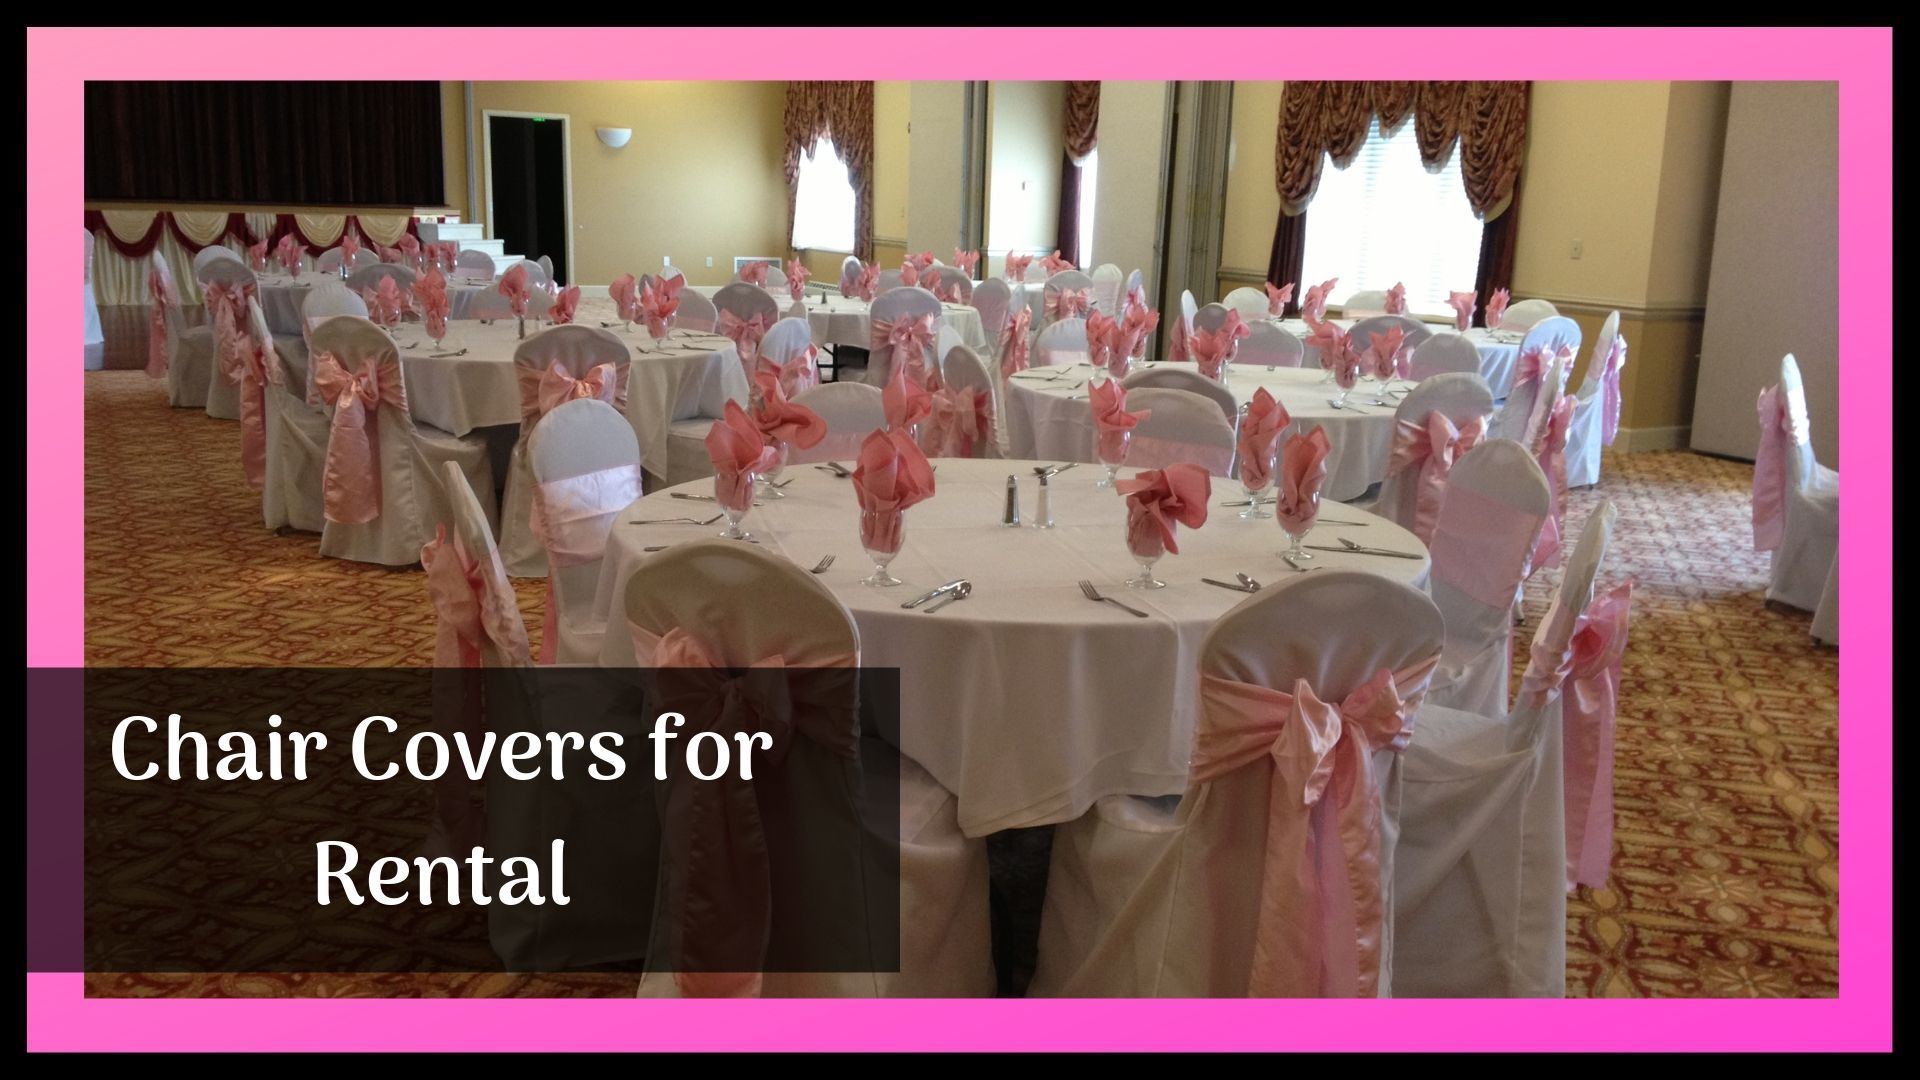 Cover-up Your Theme Festival by Covering Chairs with Decorative Covers – Event Rantals